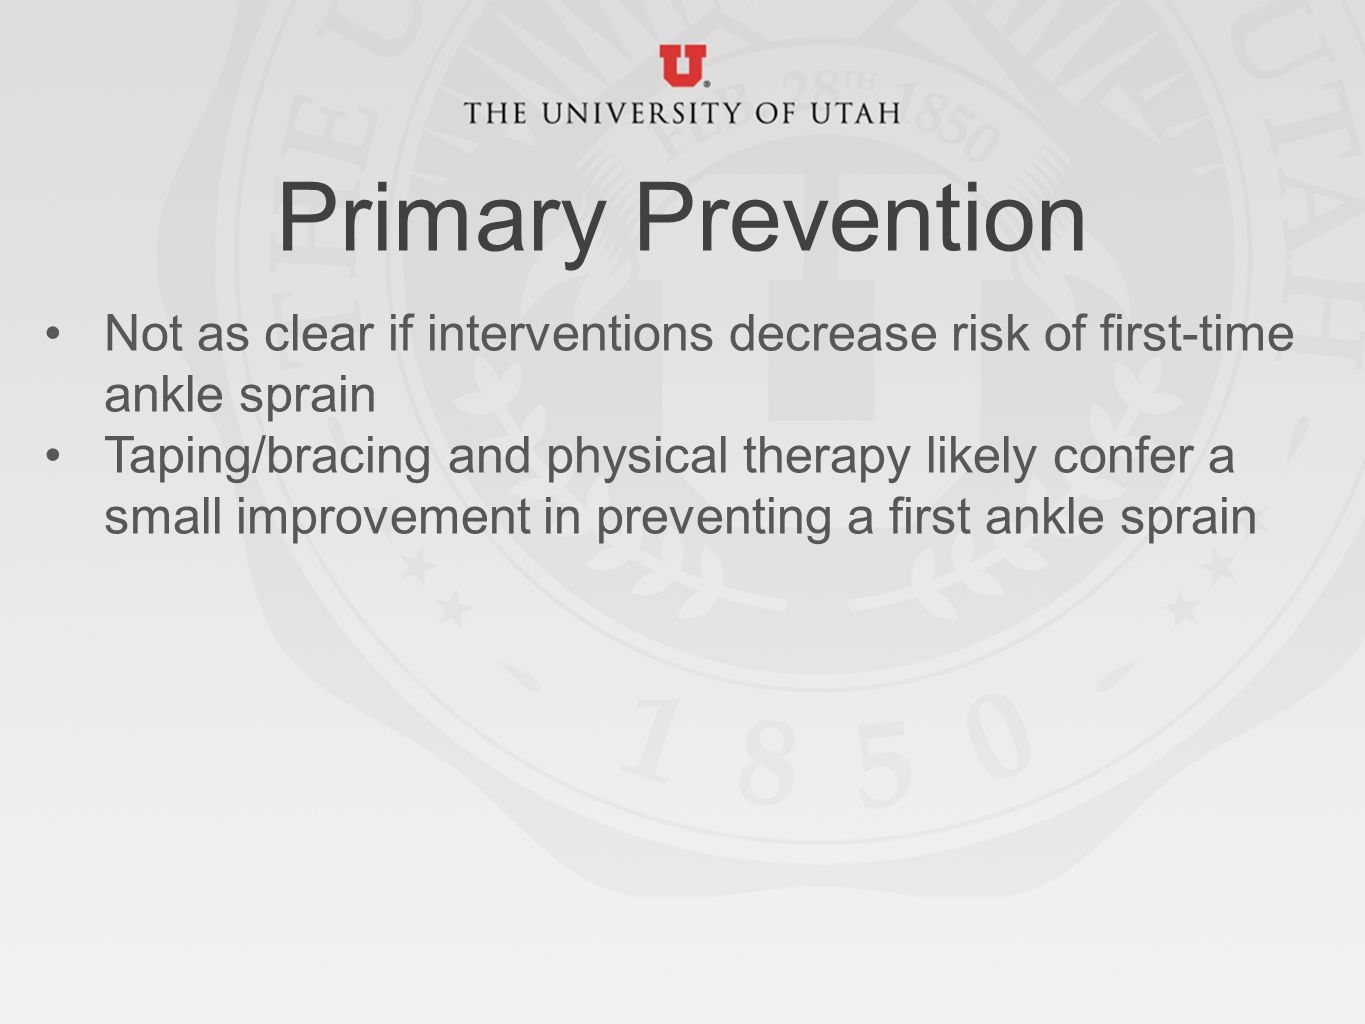 Ankle sprain physical therapy - Primary Prevention Not As Clear If Interventions Decrease Risk Of First Time Ankle Sprain